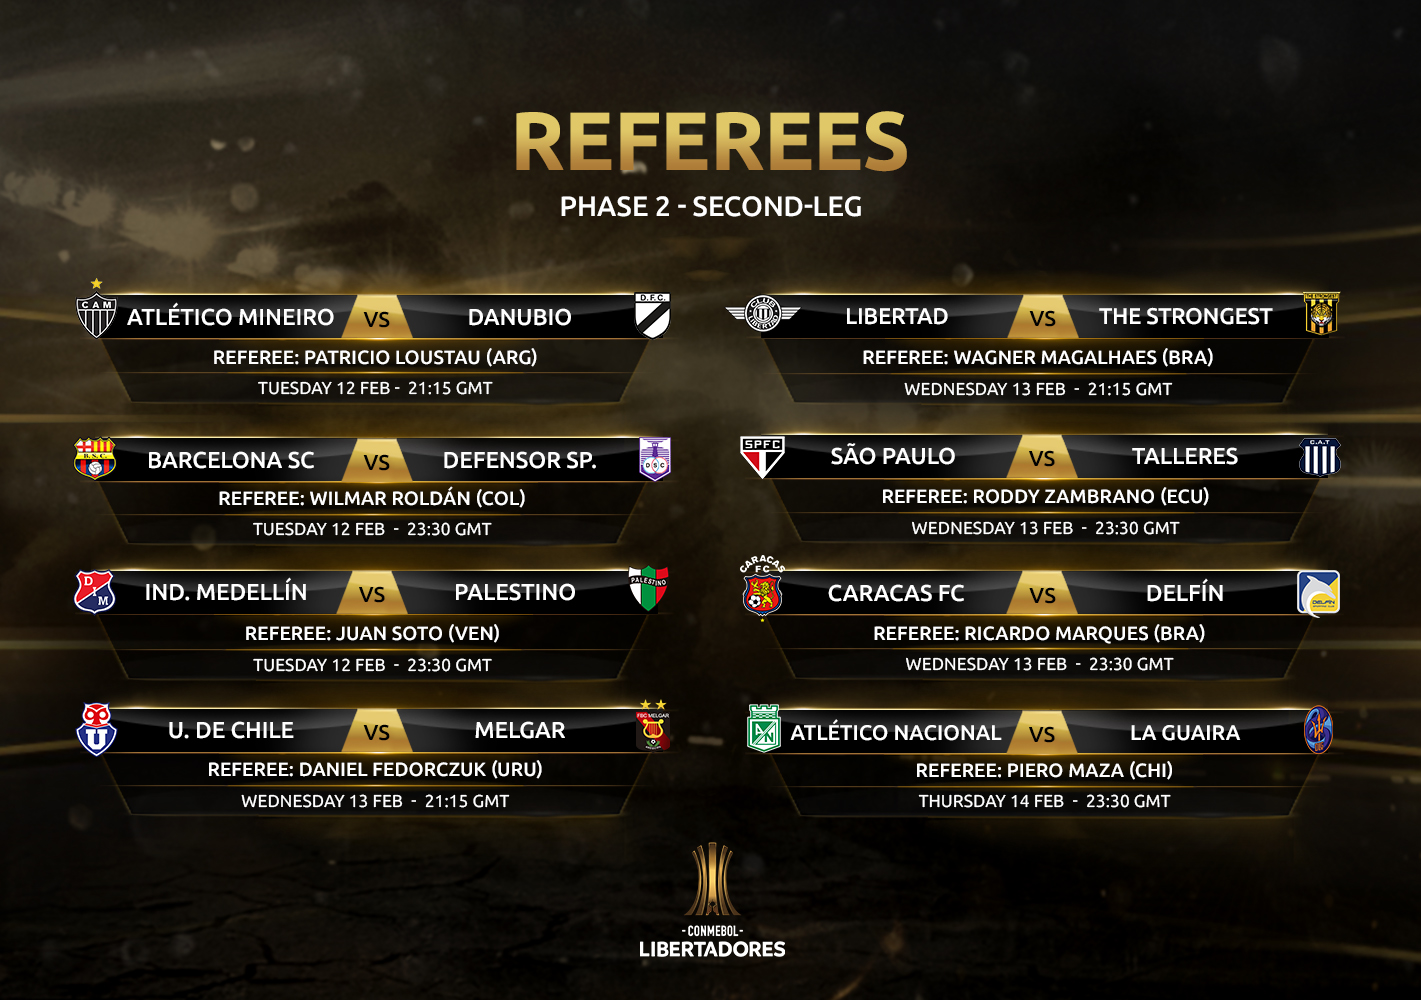 Referees 2nd leg, Phase 2